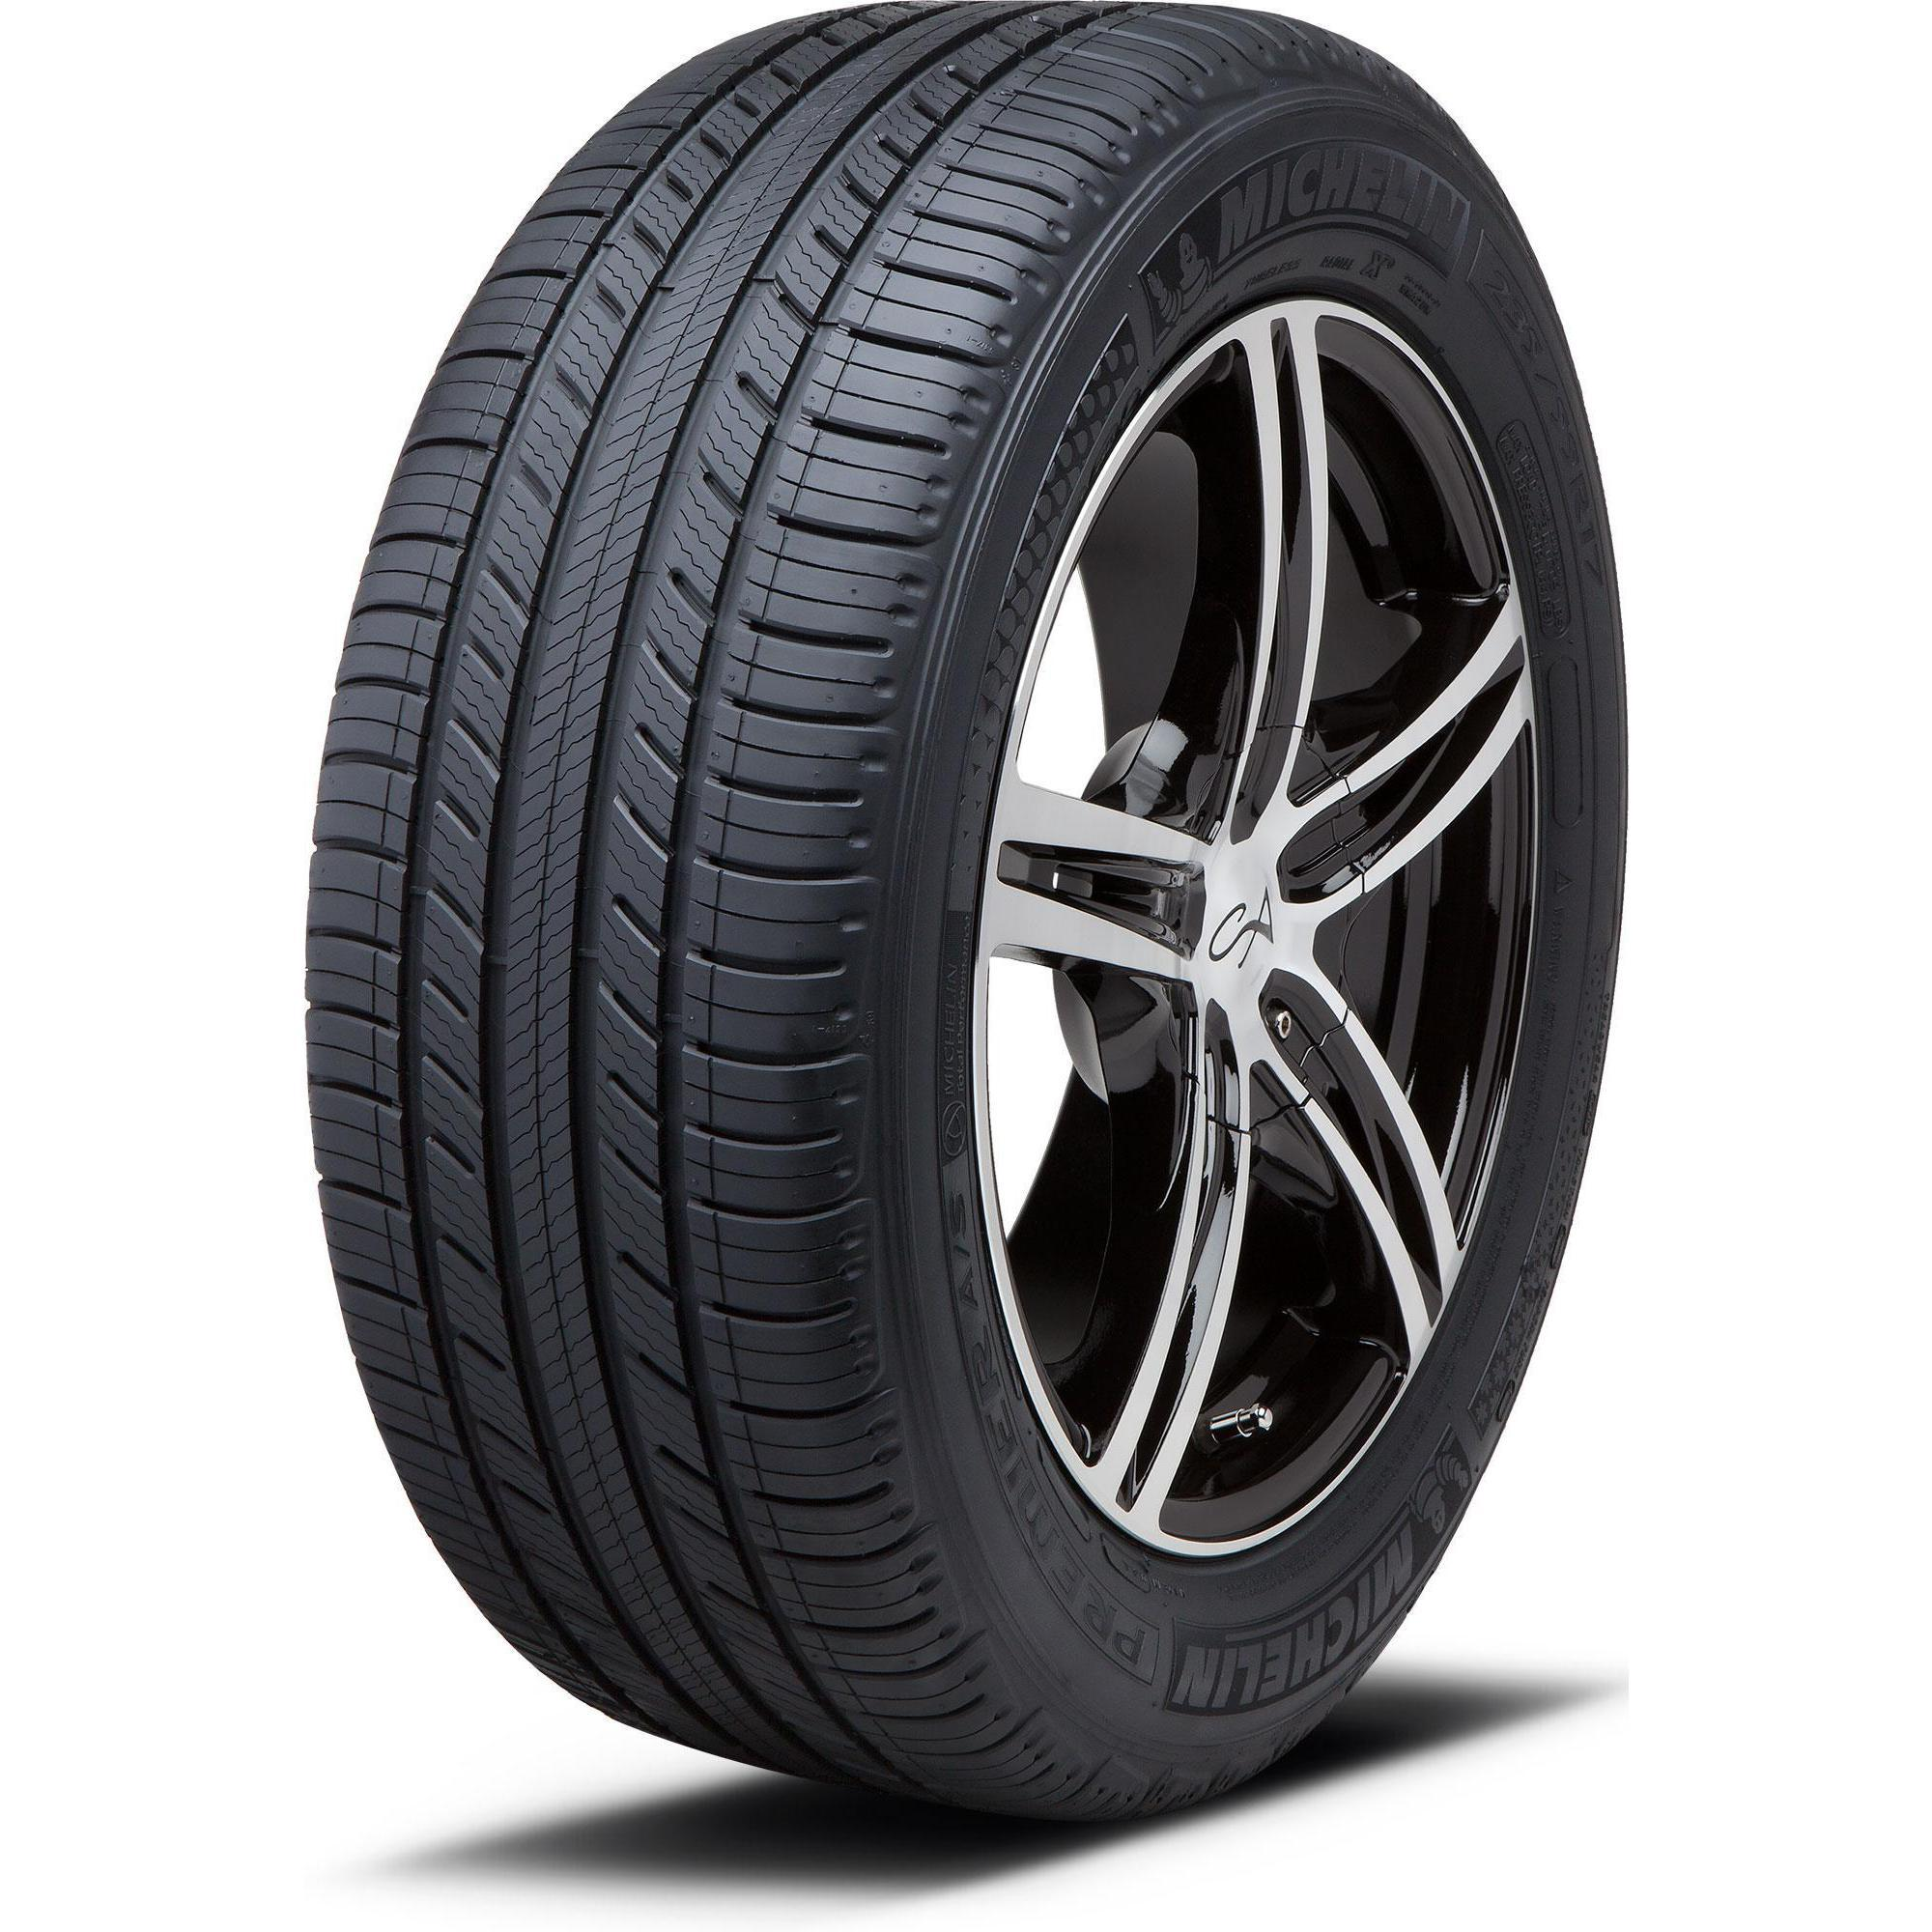 How do I find quiet tires for my car TireBuyer